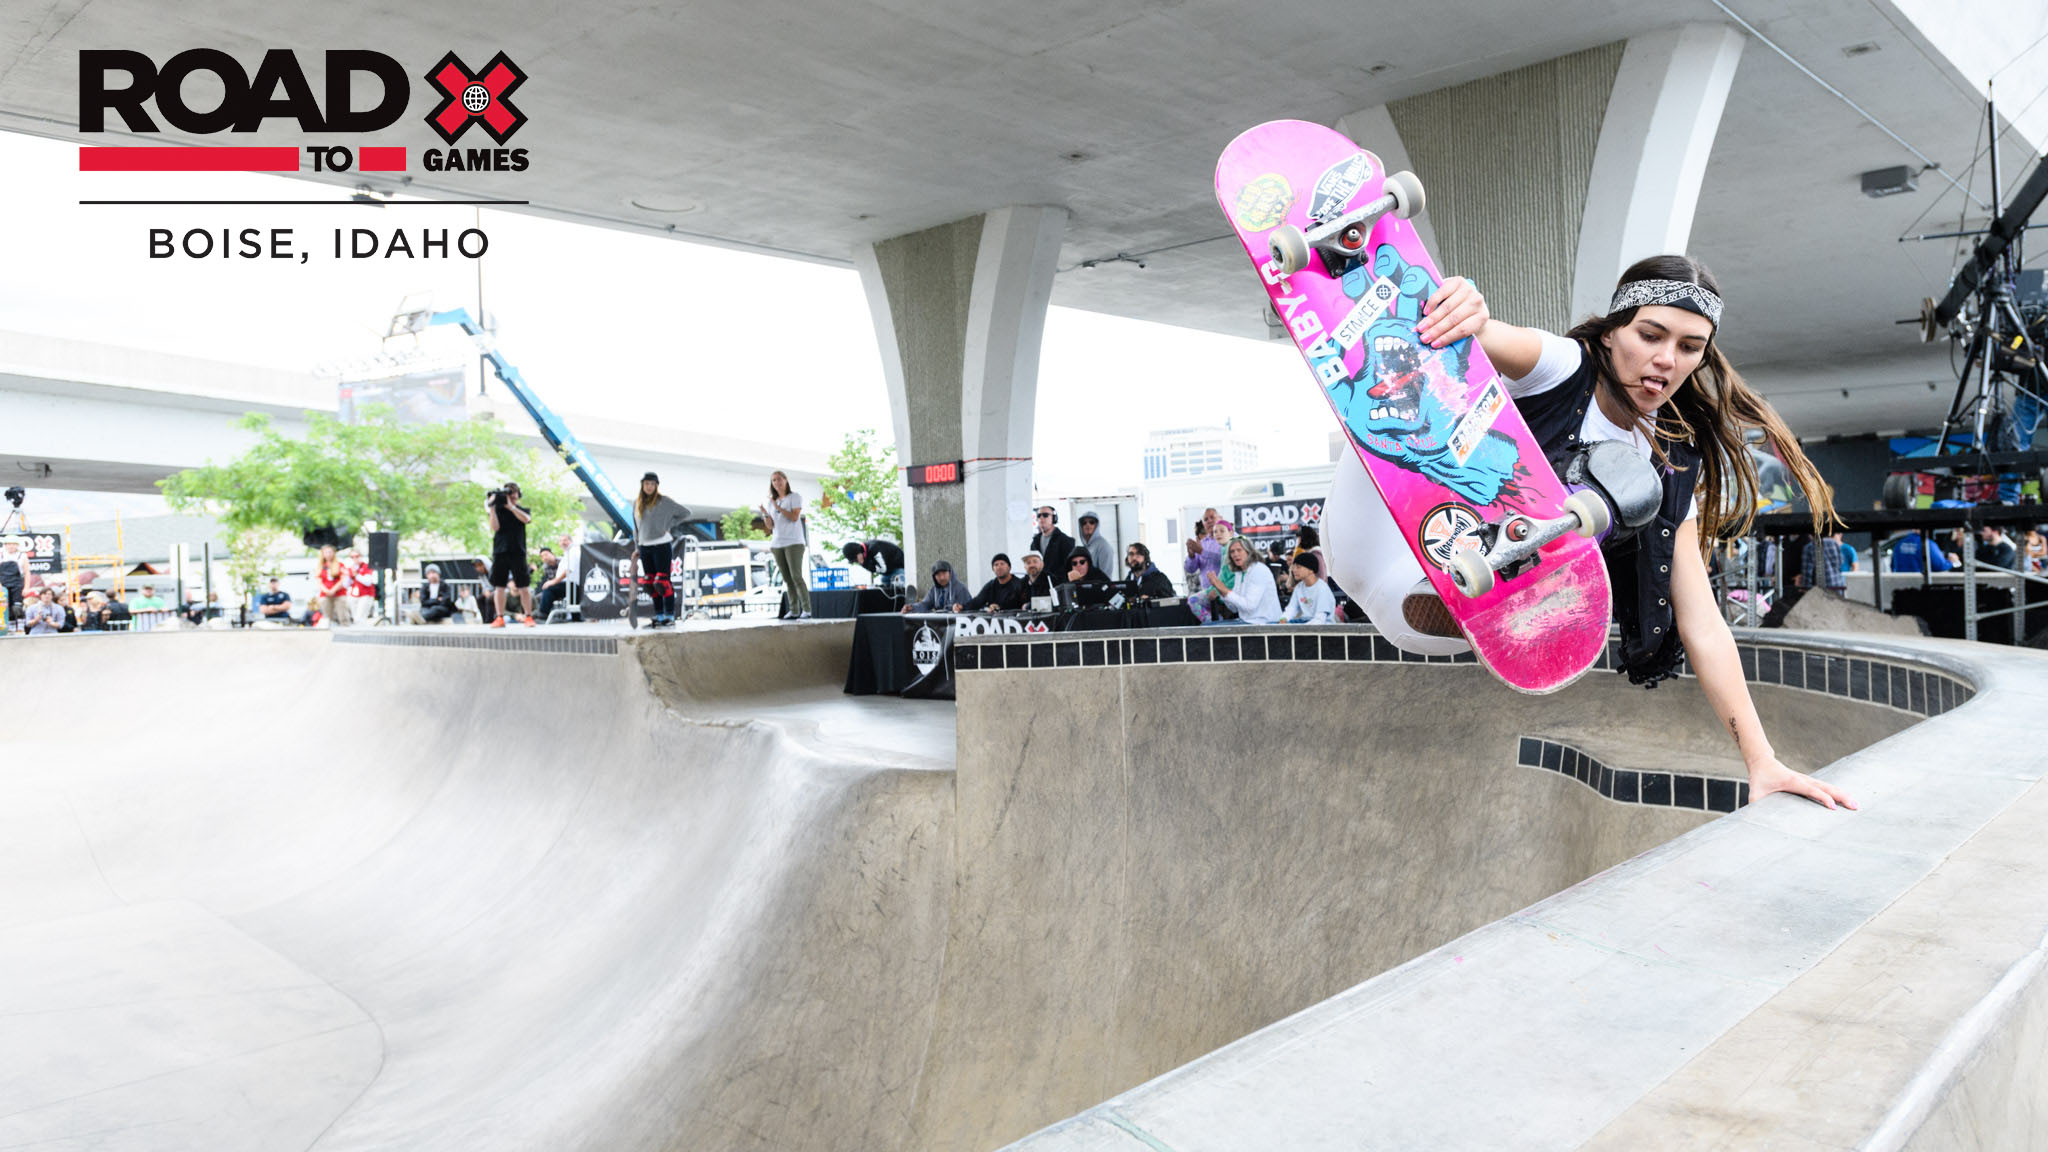 Brazil's Yndiara Asp is on the invite list for the Road To X Games Boise Park Qualifier.